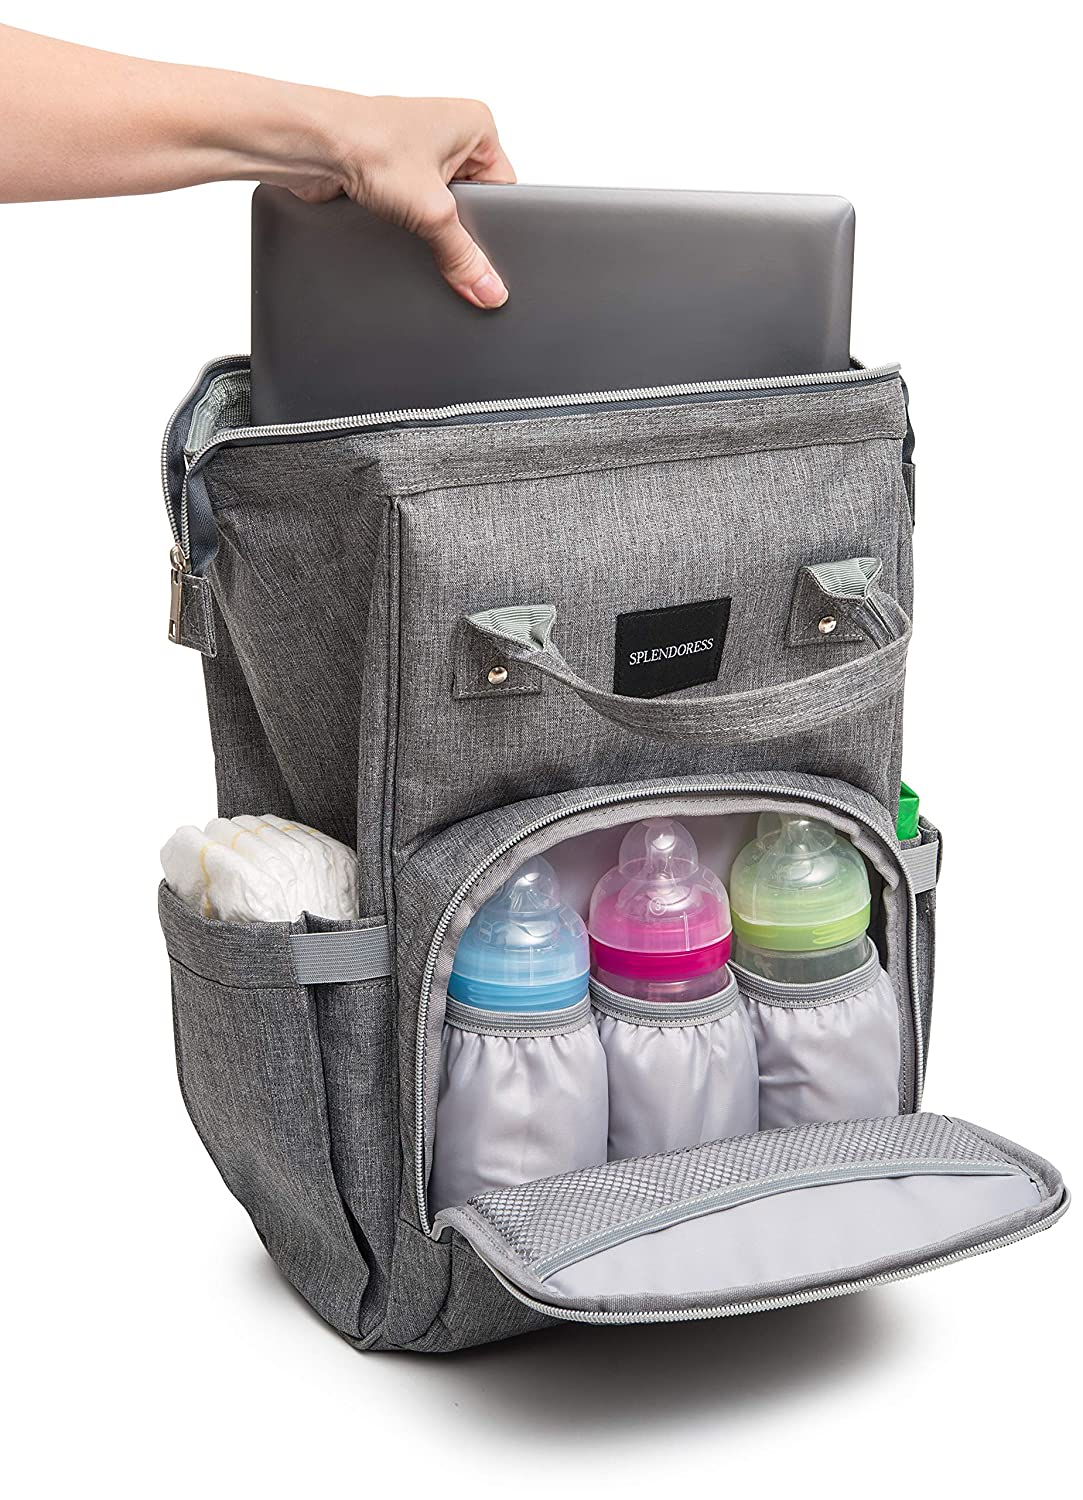 Buy One Get One Free Baby Diaper Bag Backpack with Free Changing Pad Waterproof Maternity Bag Organizer for Boy or Girl Large Capacity Nappy Tote Stylish and Durable for Men and Women -Grey